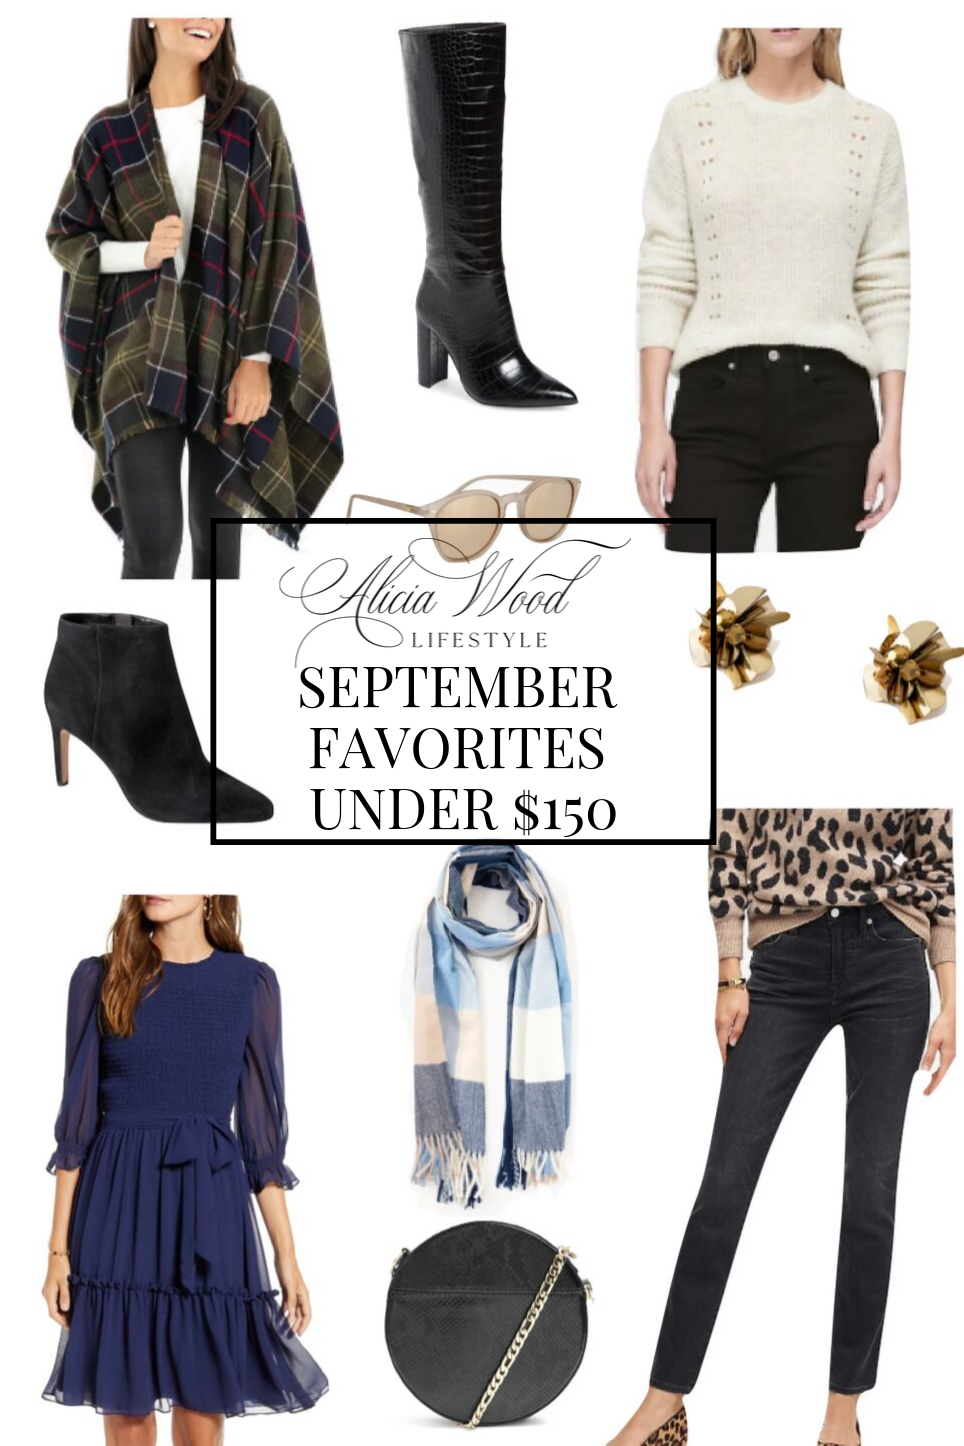 September Favorites Under $150 | Ready For Fall Styles